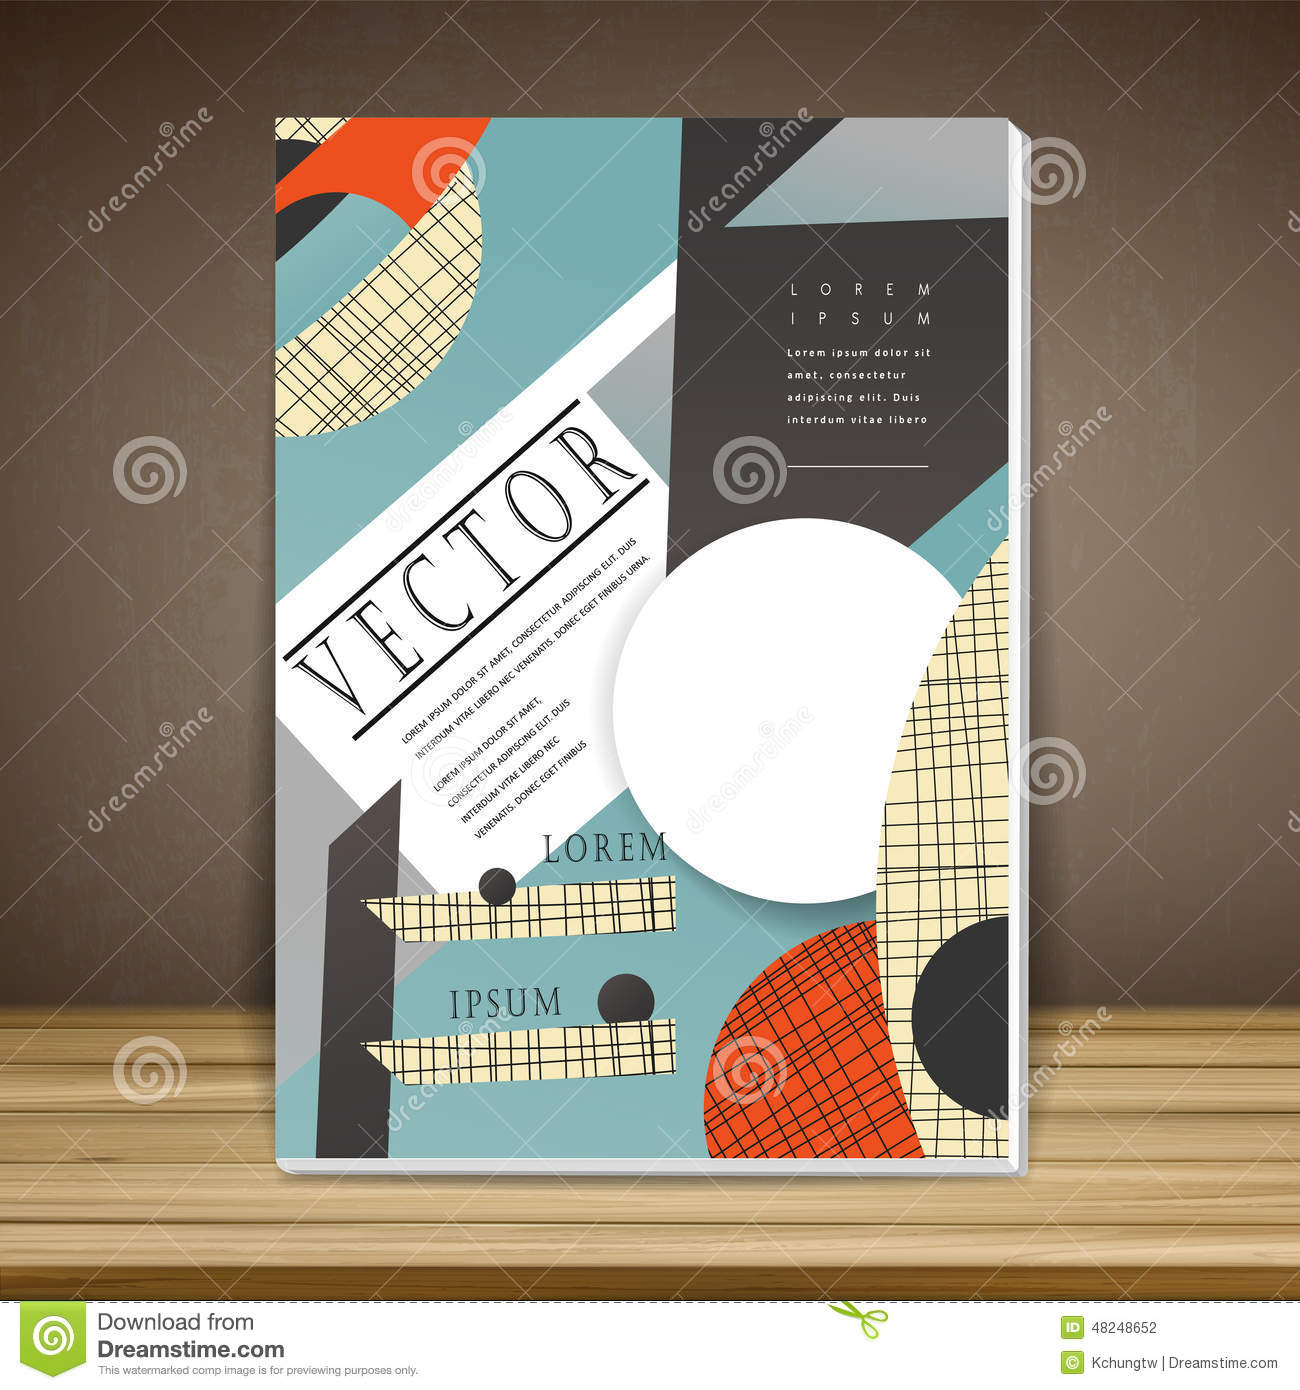 Collage Style Book Cover ~ Collage style book cover stock vector image of marketing